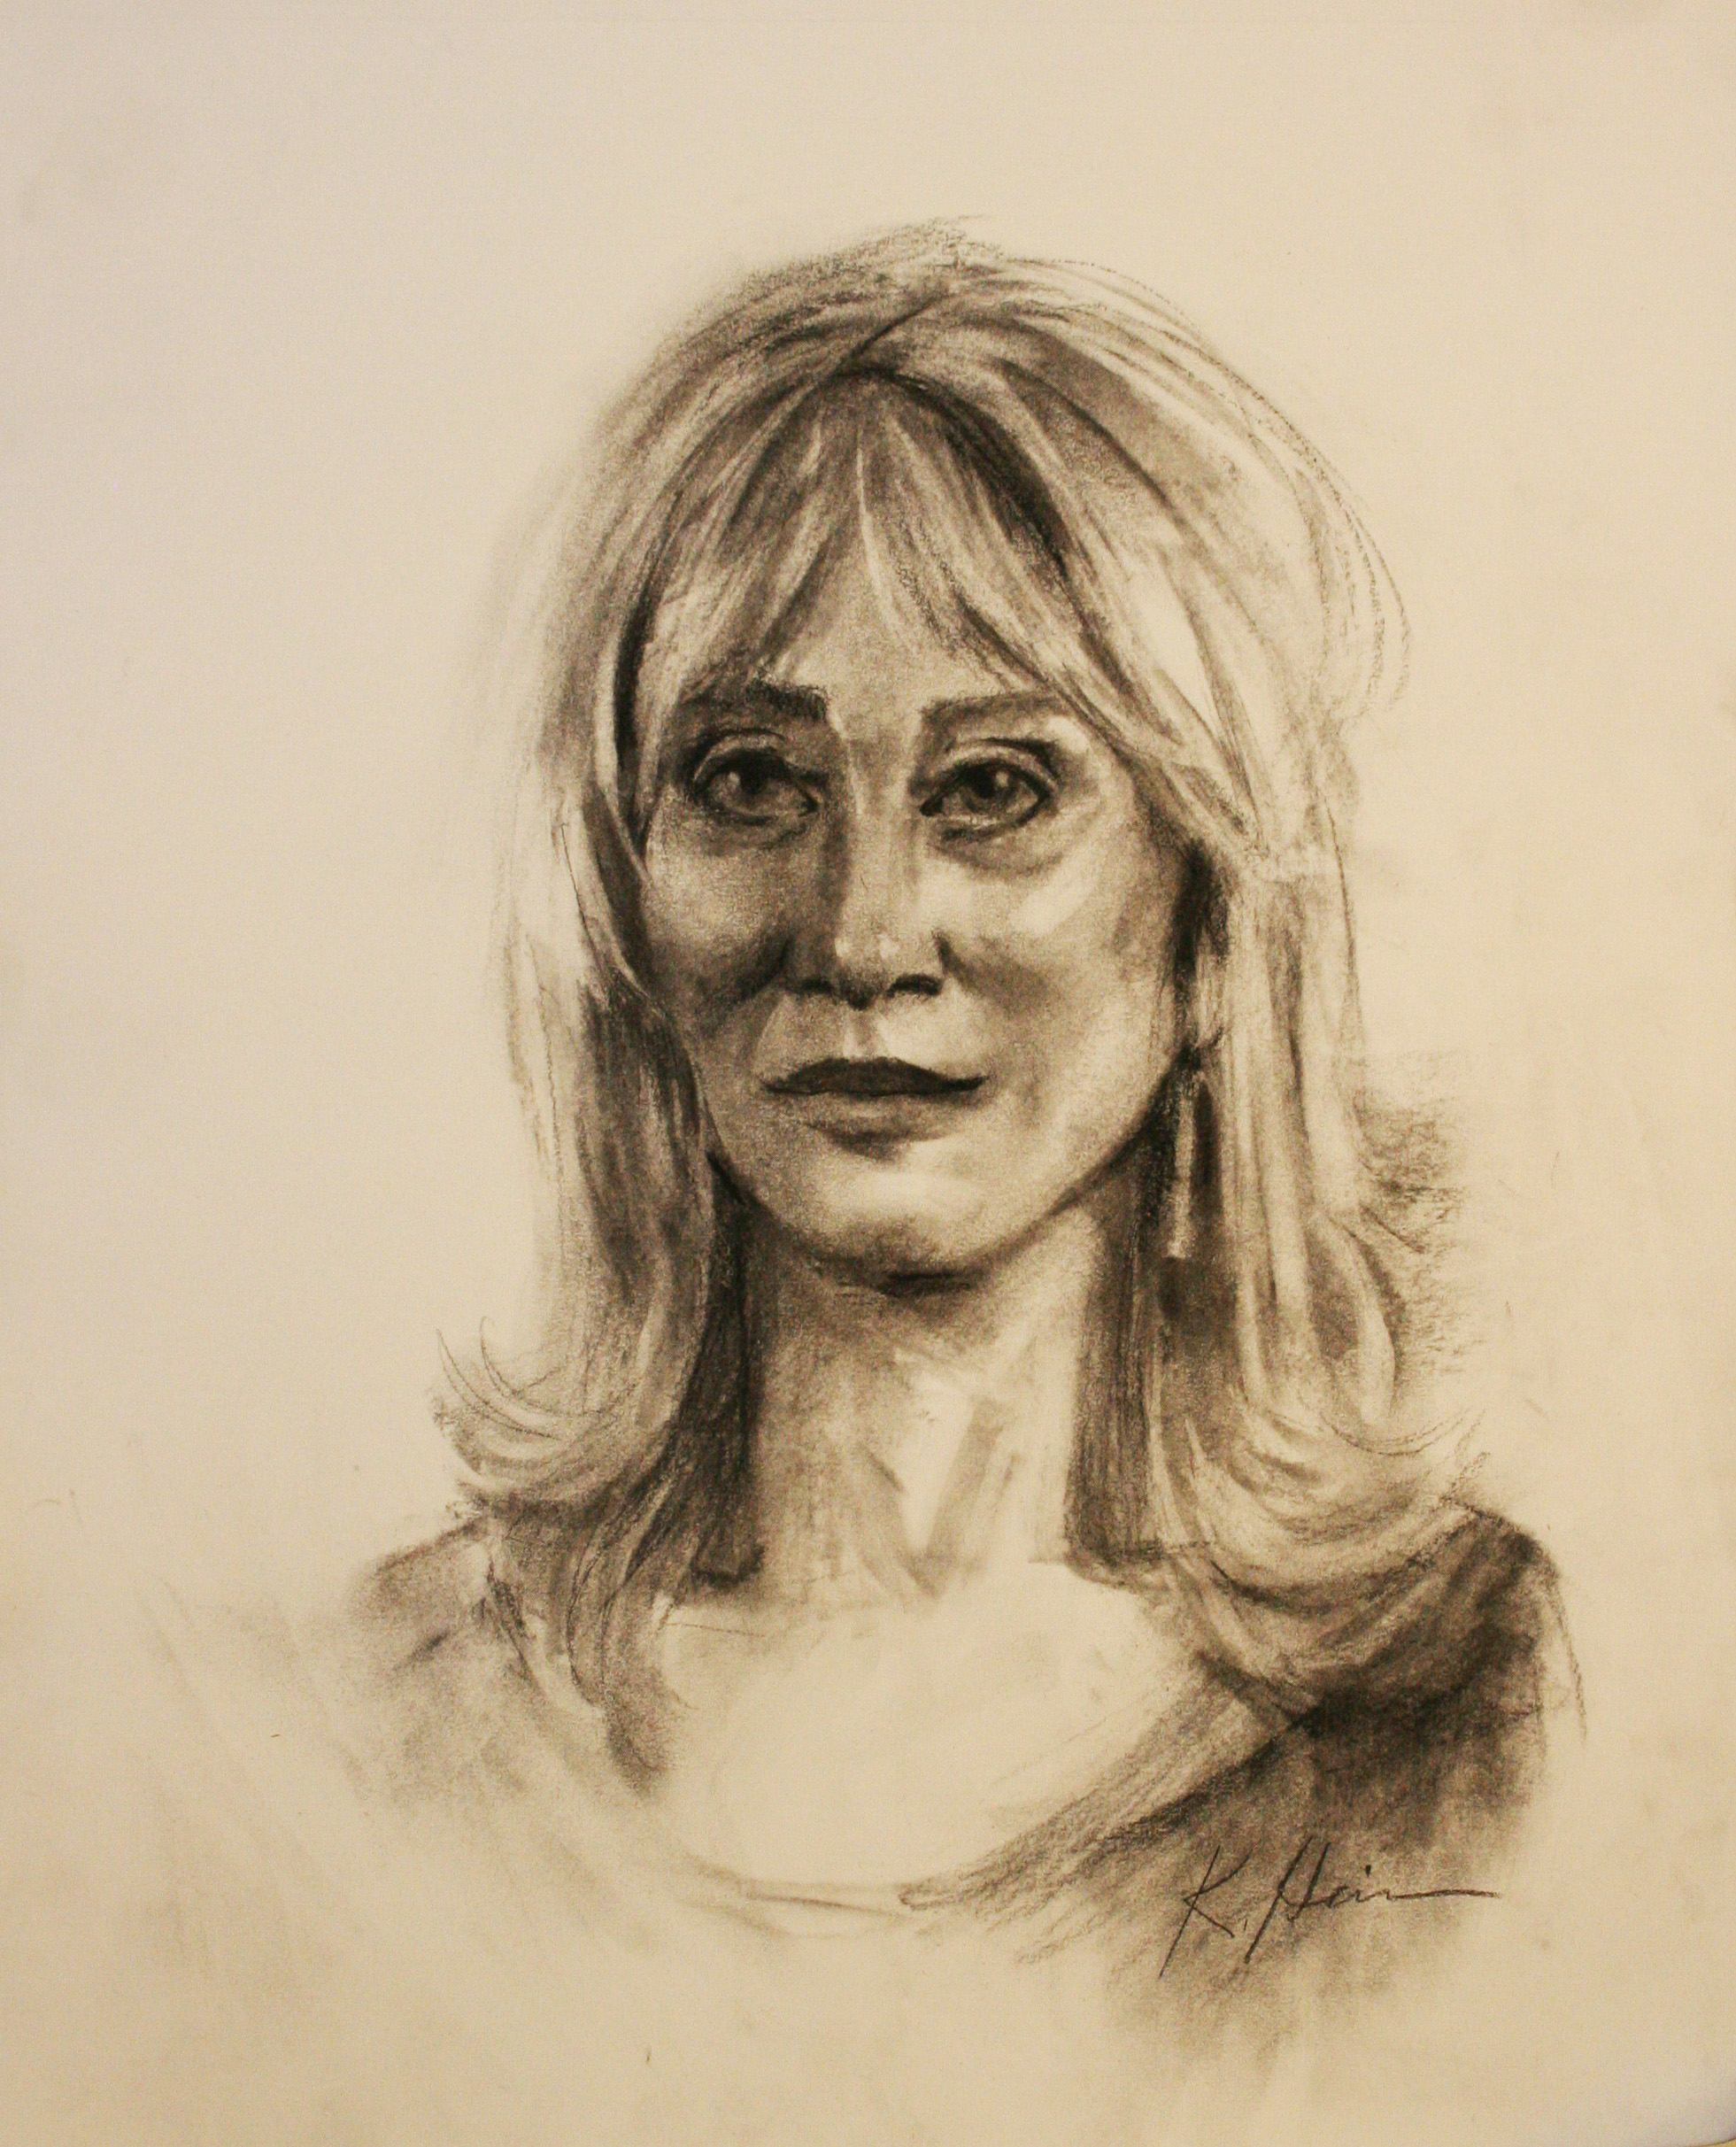 Kathryn Heim did this charcoal drawing.